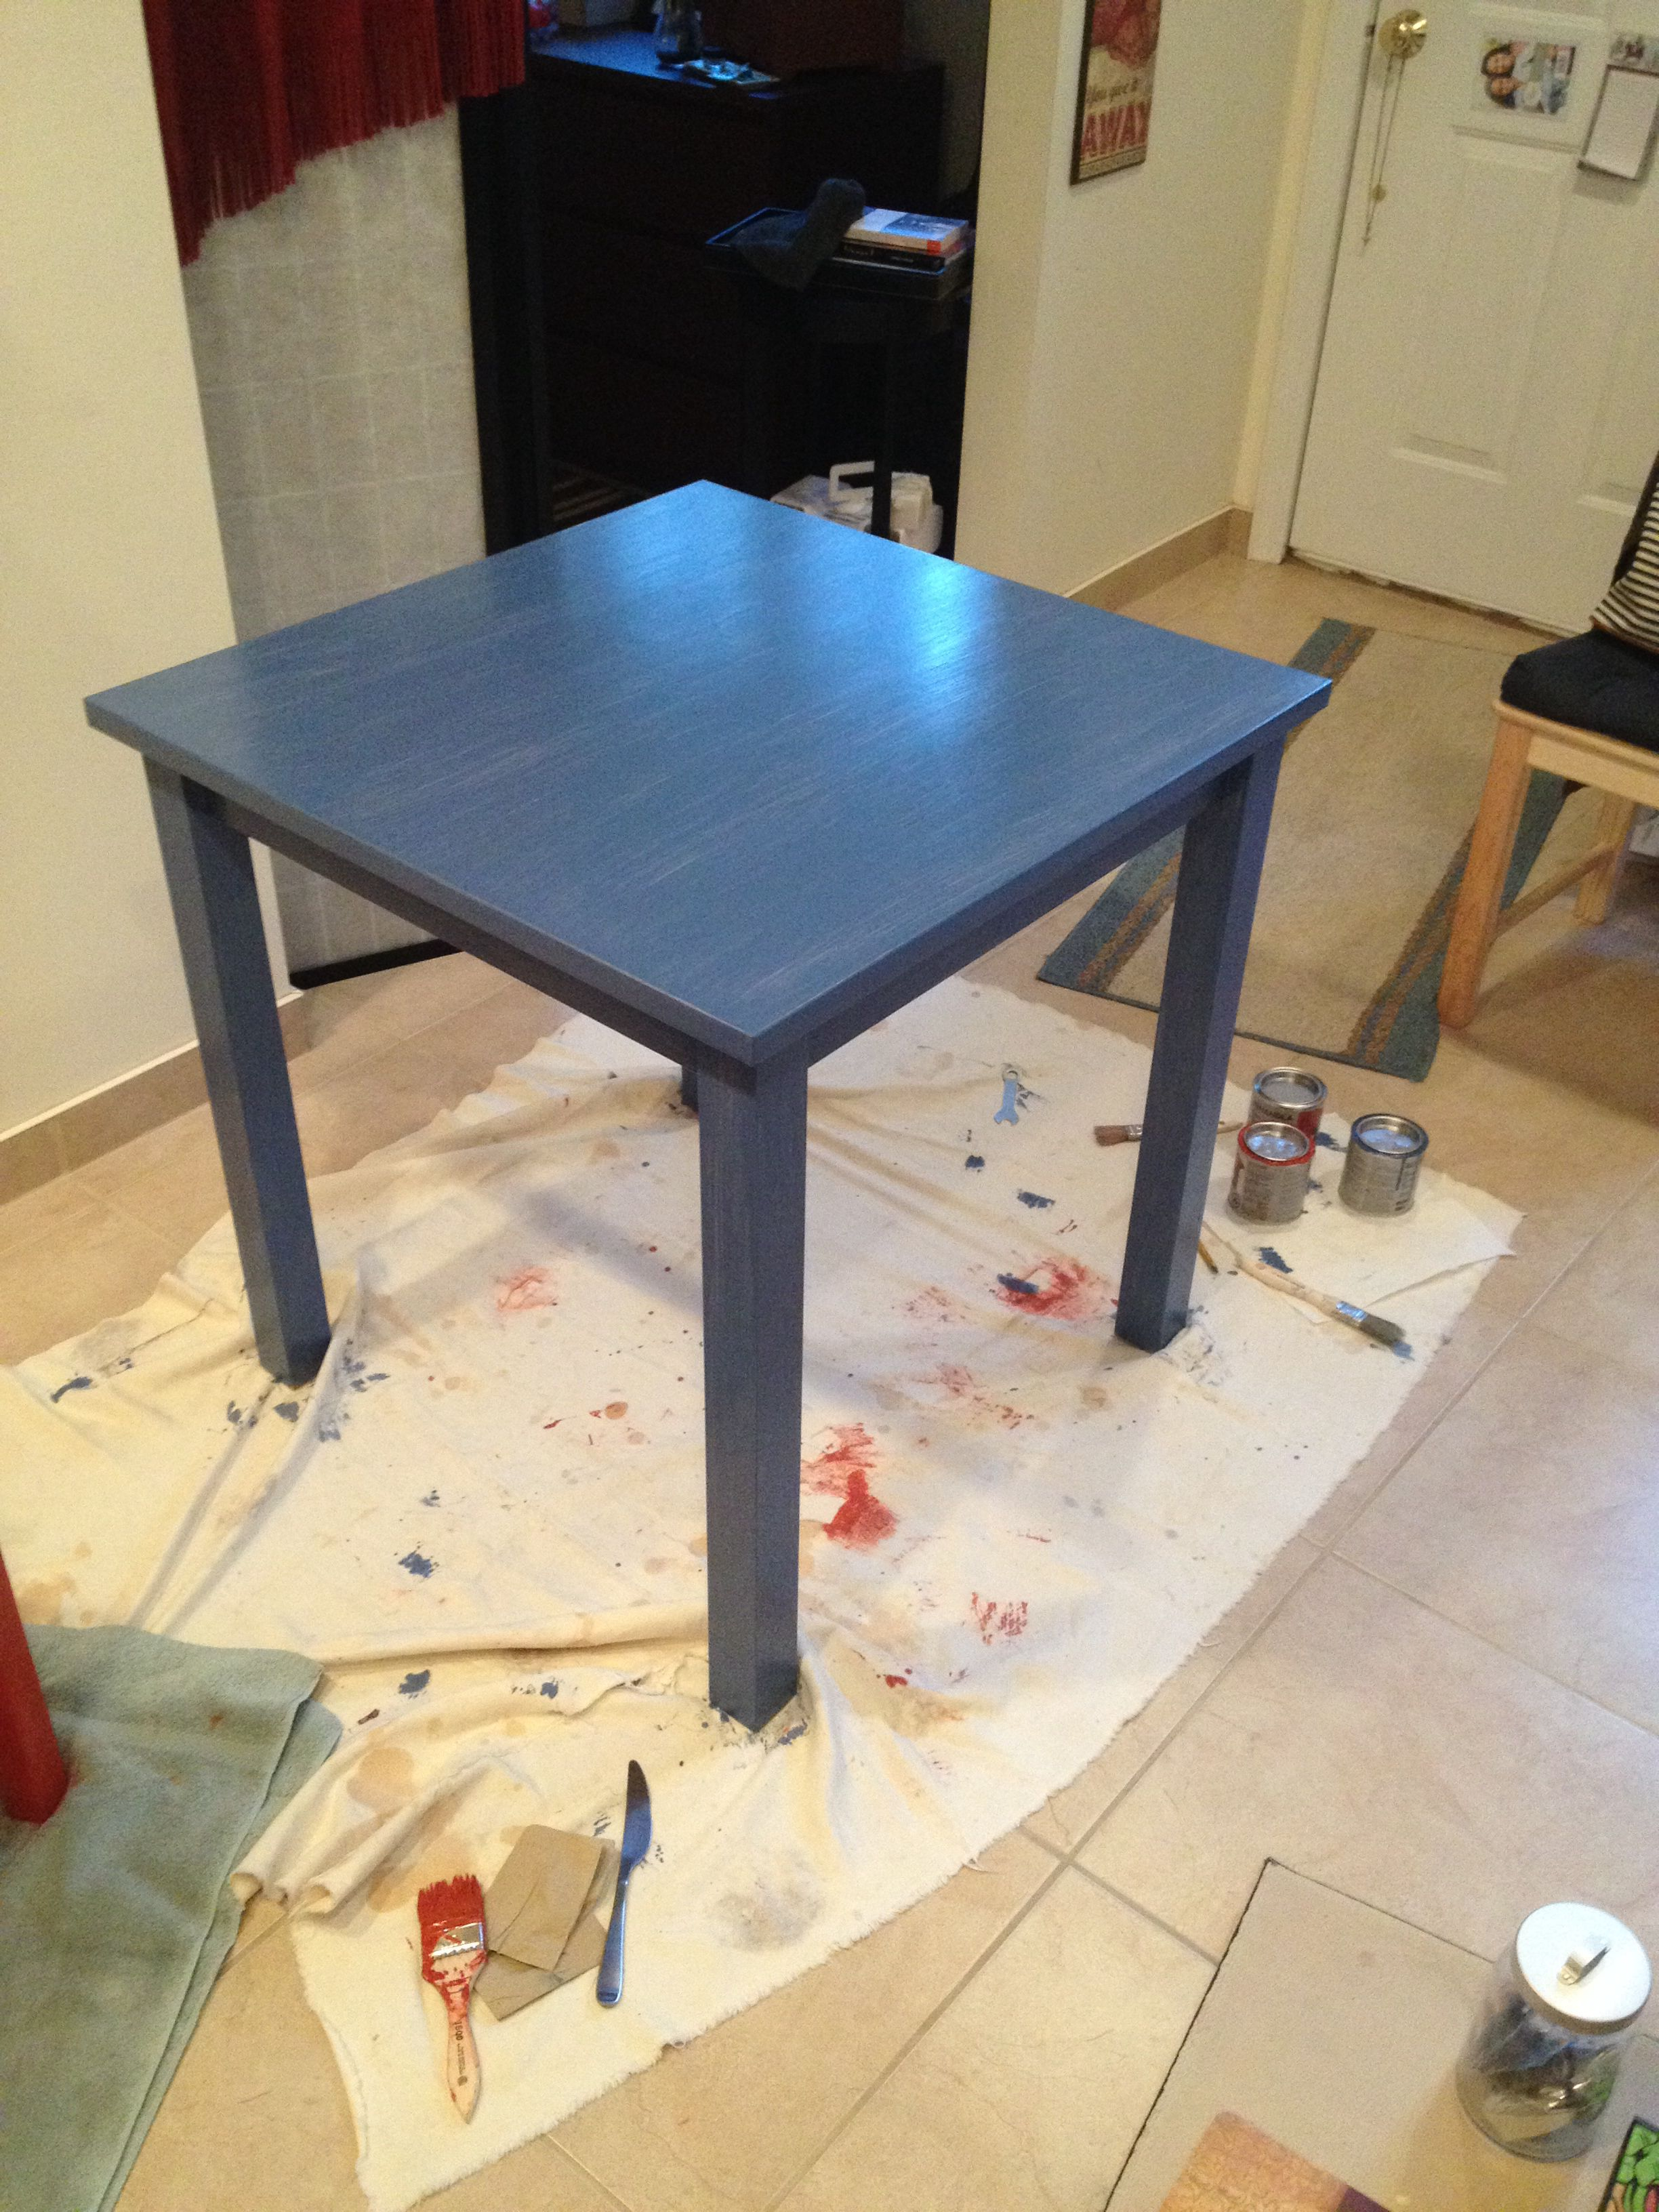 Ikea breakfast table originally birch wood painted with behandla blue glazing paint for untreated wood with sealant